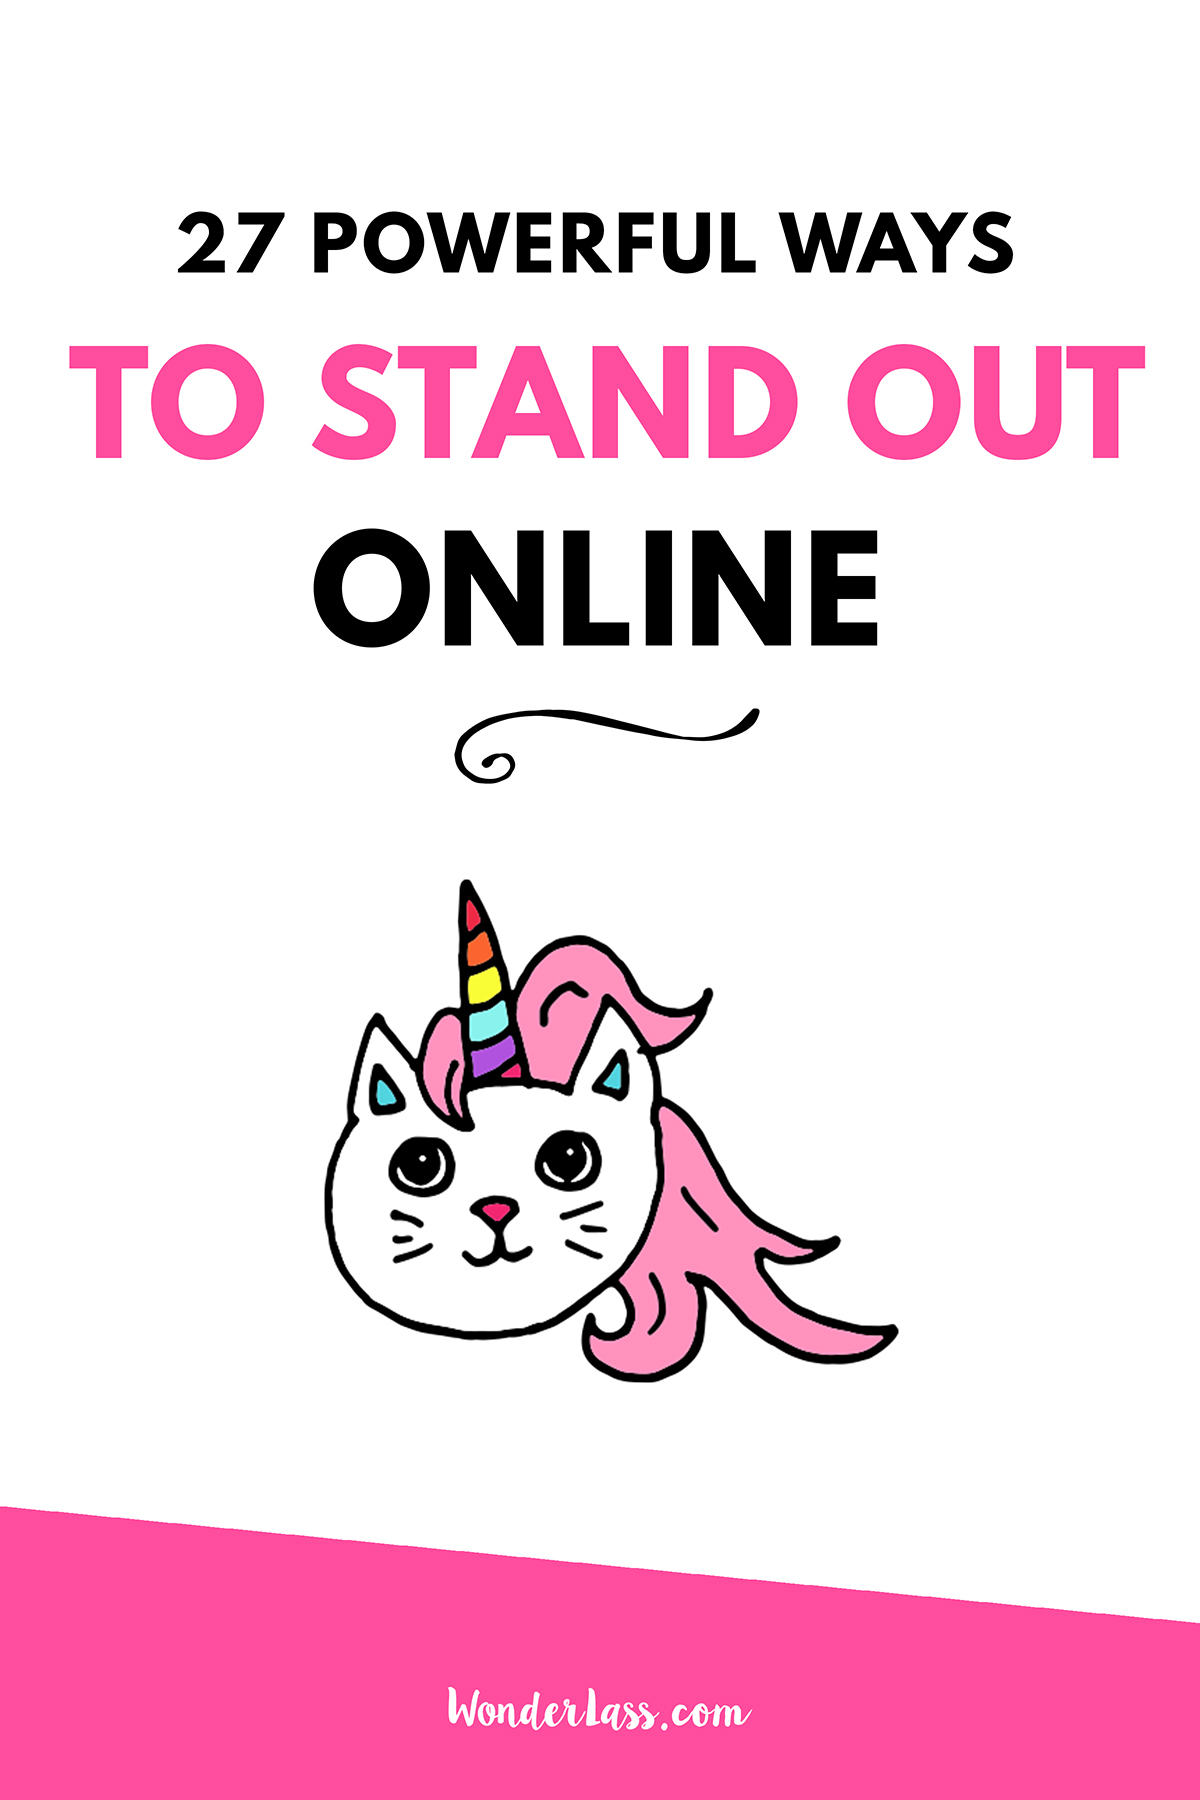 27 Powerful Ways to Stand Out Online | If you're a blogger or entrepreneur wondering how the heck you can stand out online so you can grow your audience, then this blog post is for you! | Wonderlass